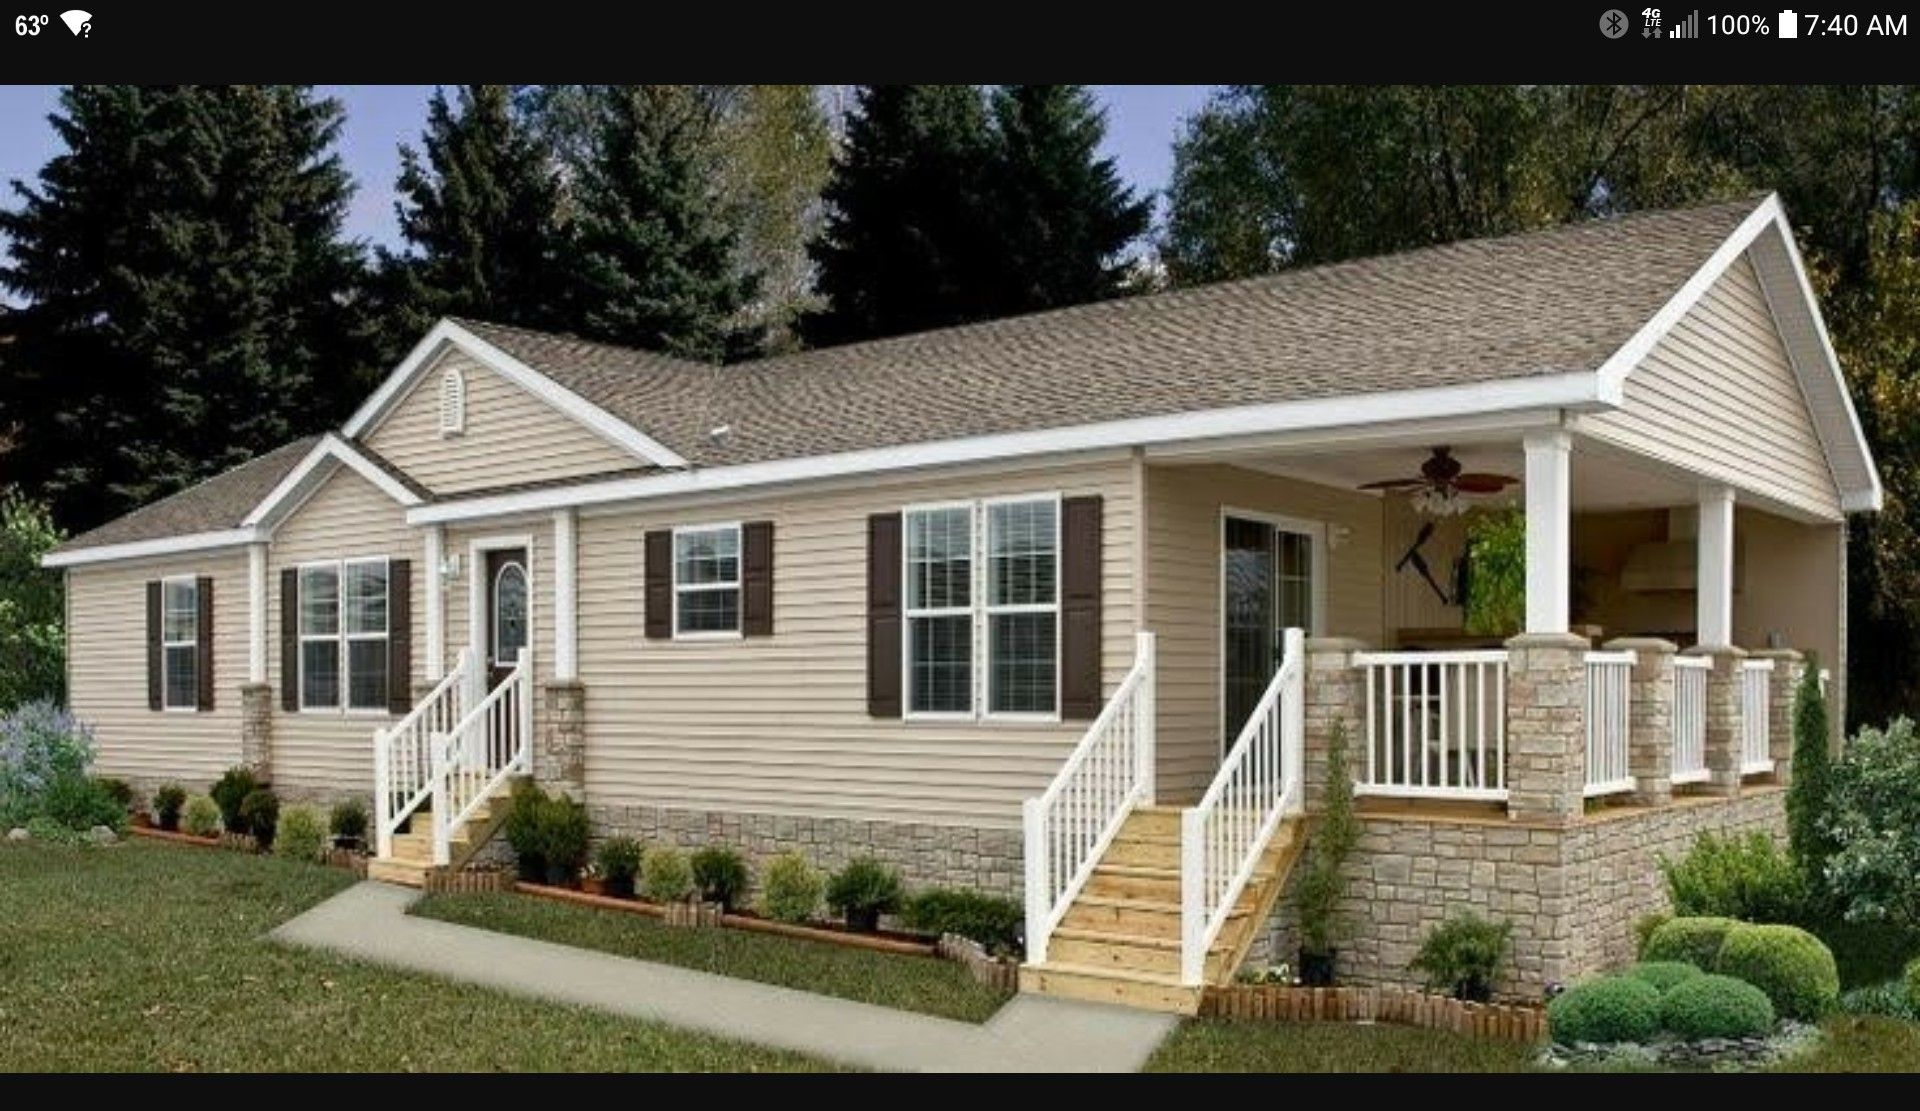 mobile home exteriors mobile home repair mobile home porch rh pinterest com